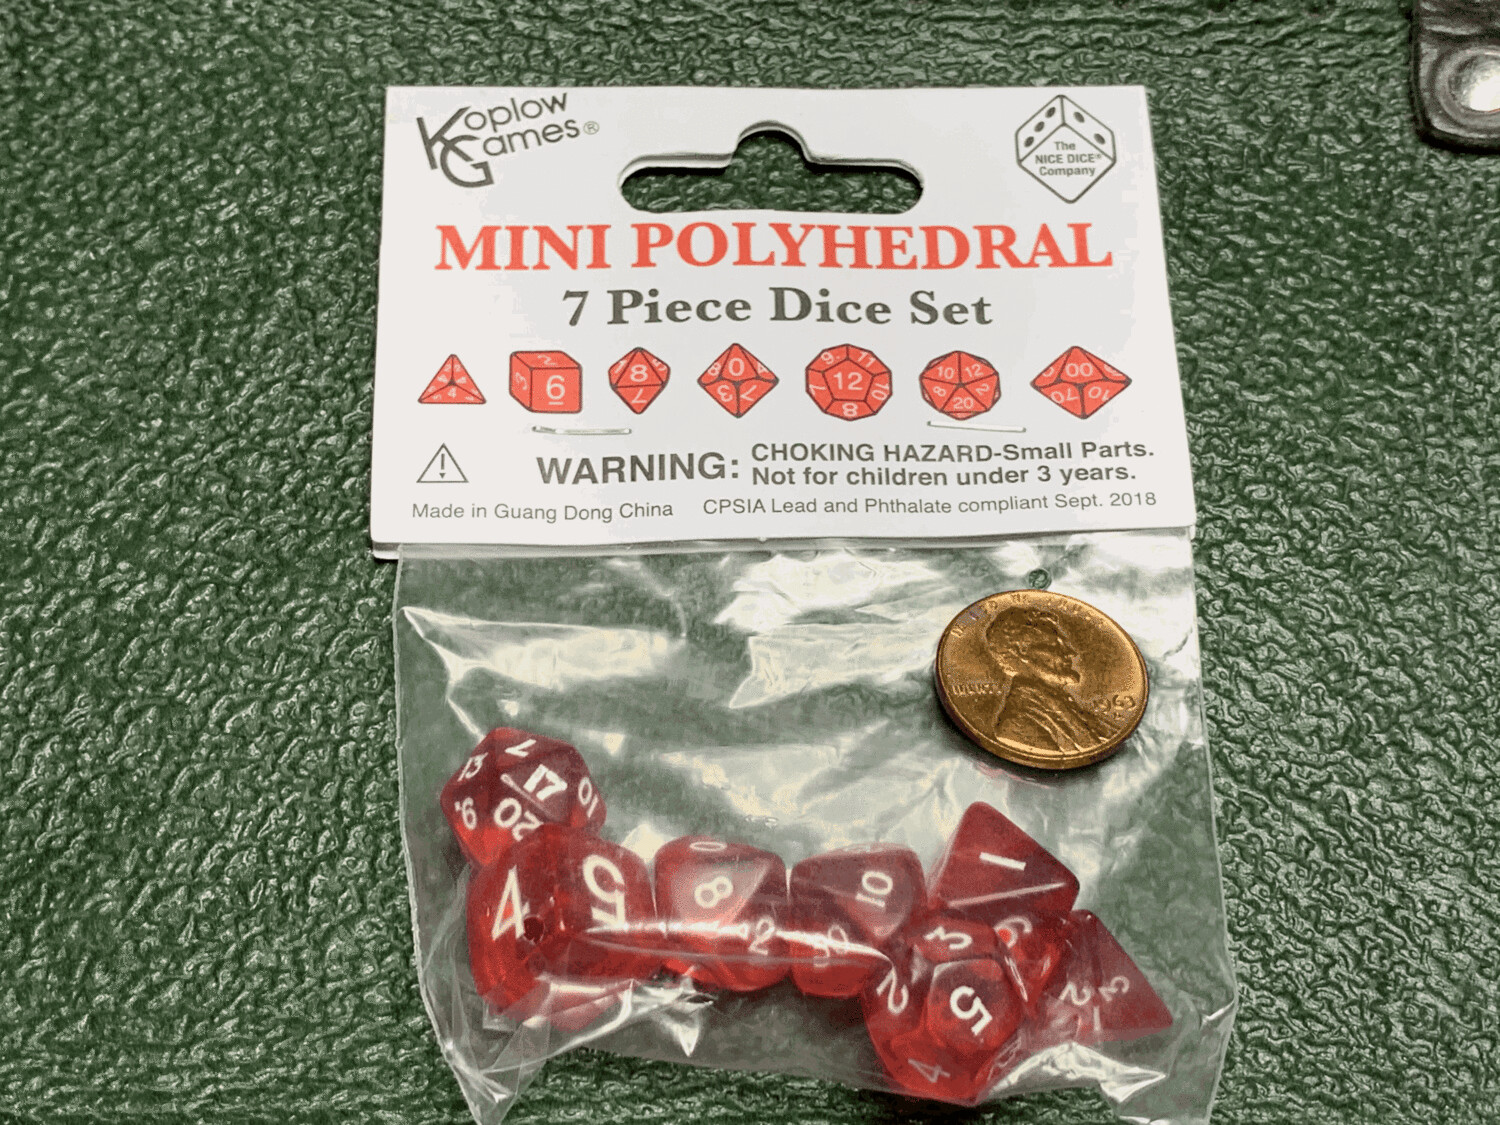 Mini Polyhedral 7 Dice Set - Transparent Red with White